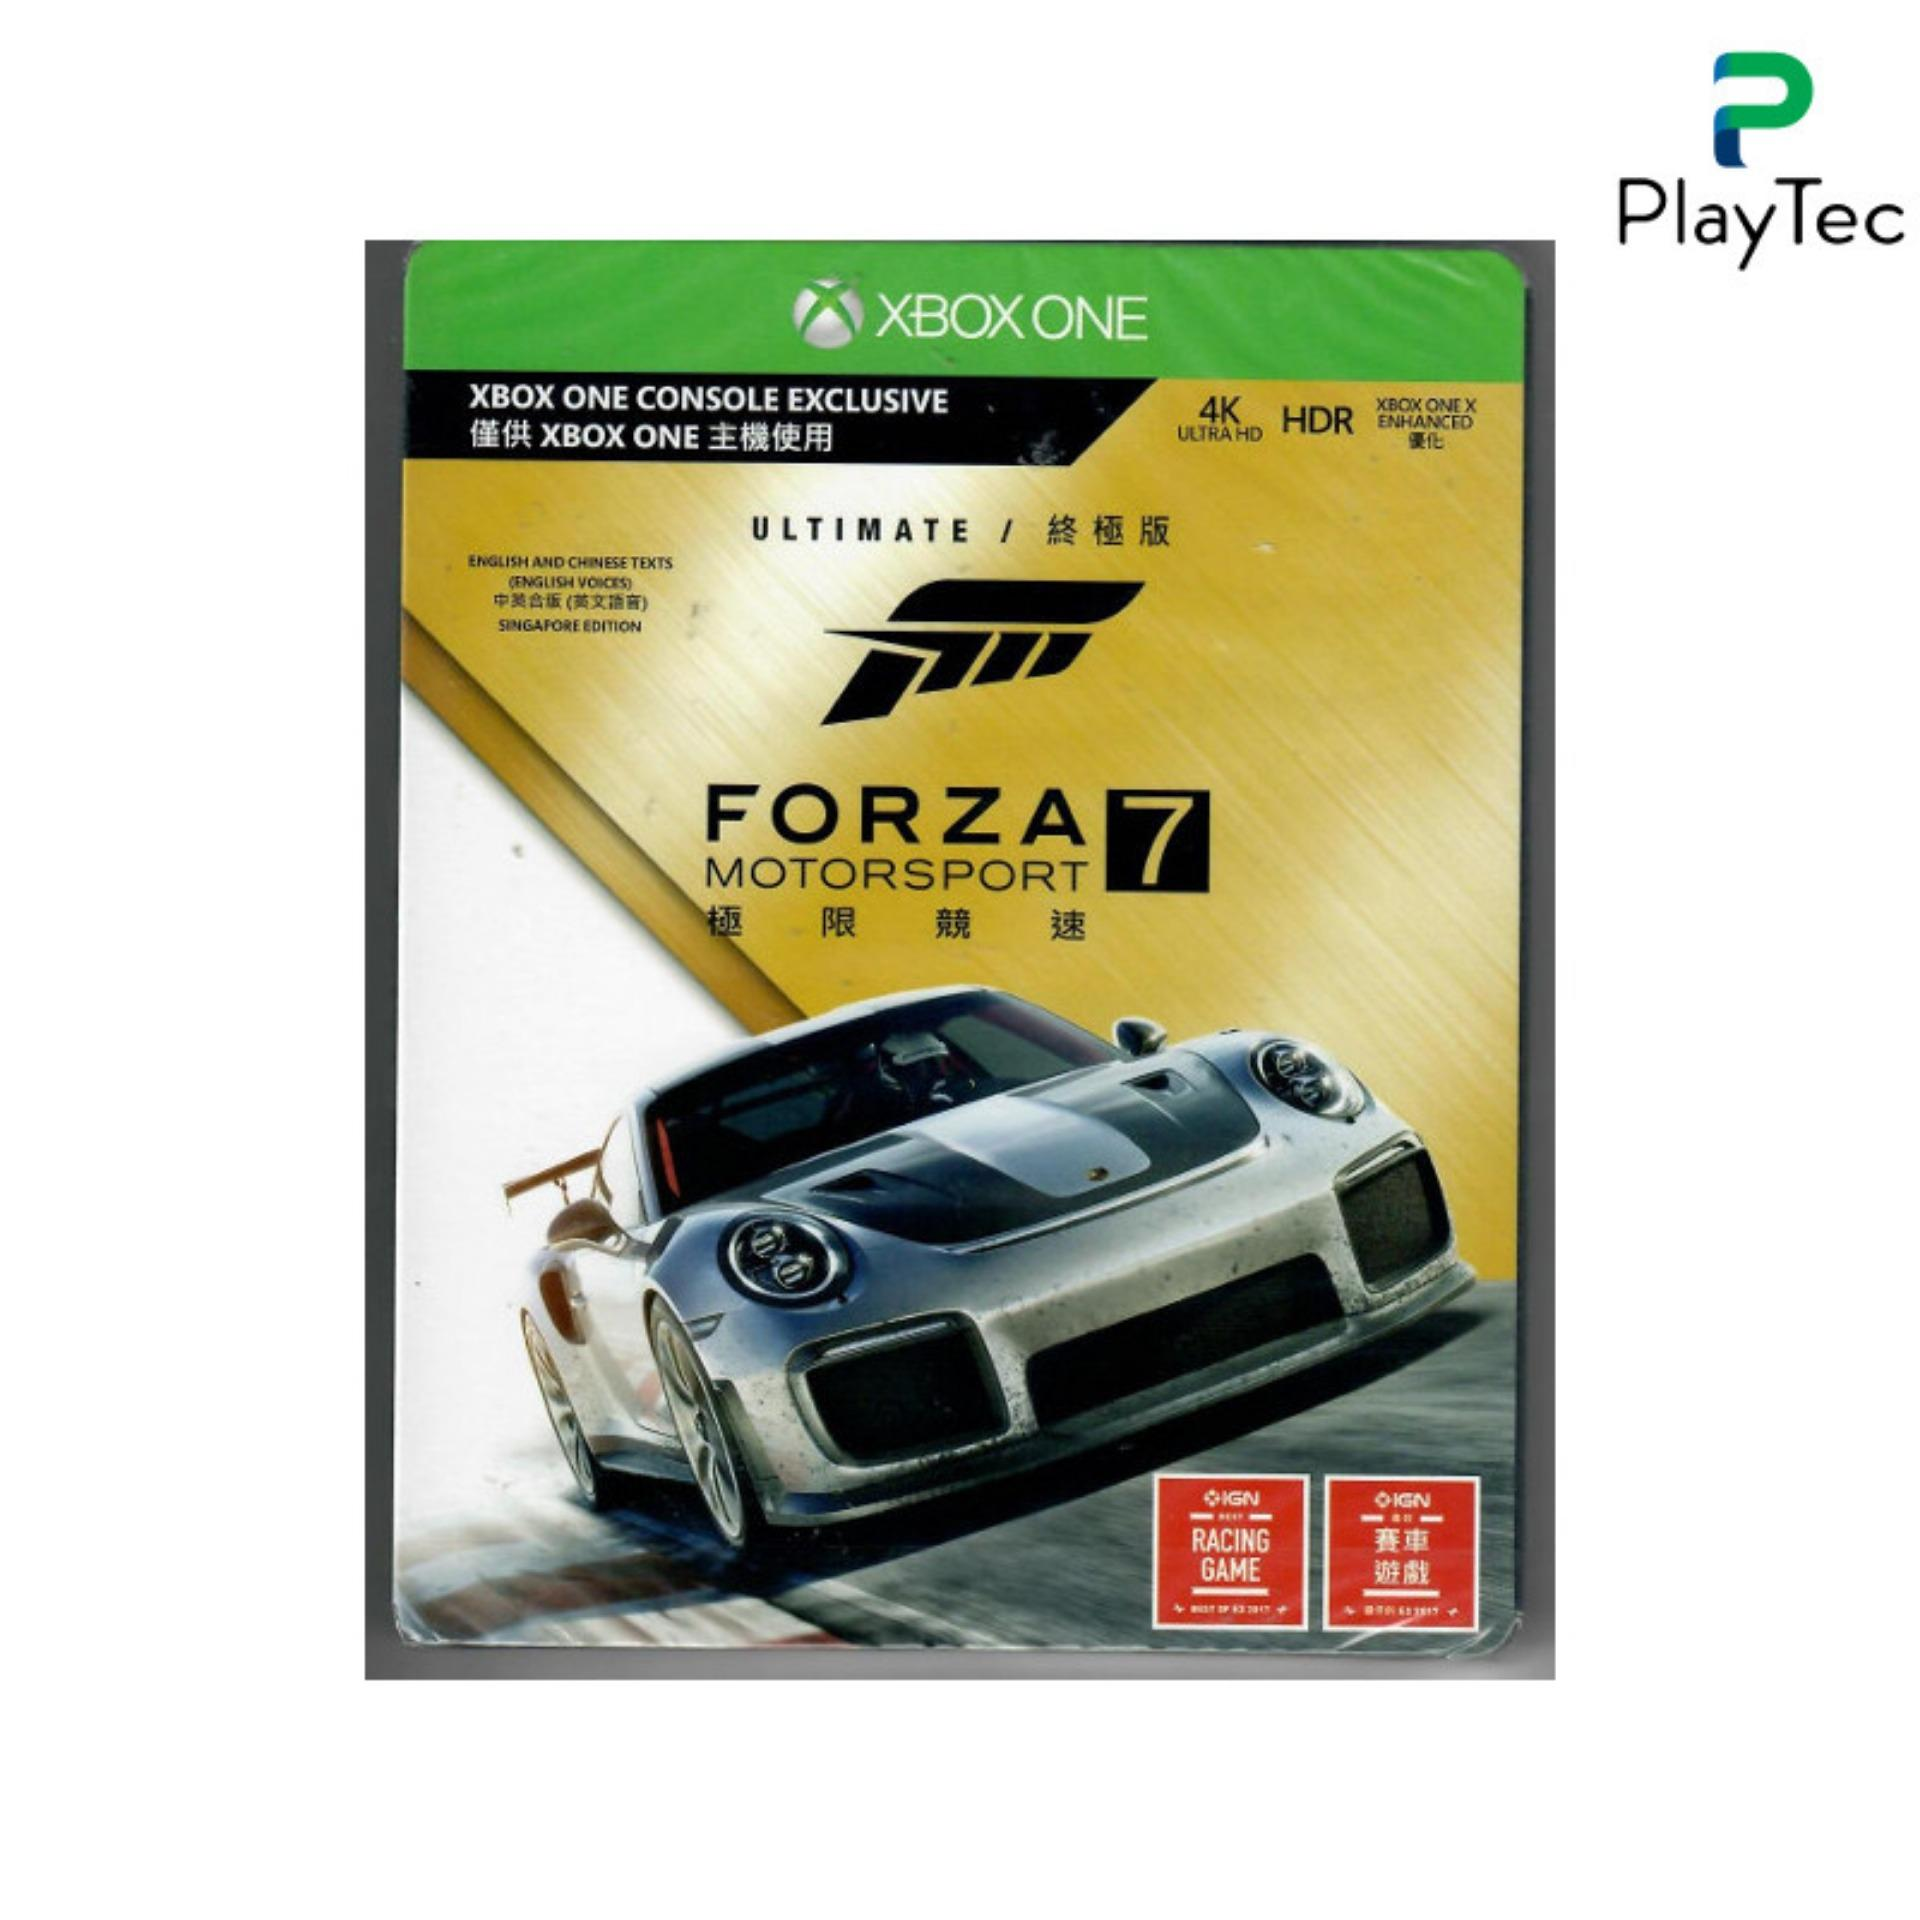 XBOX One Forza 7 Ultimate Edition (R3)